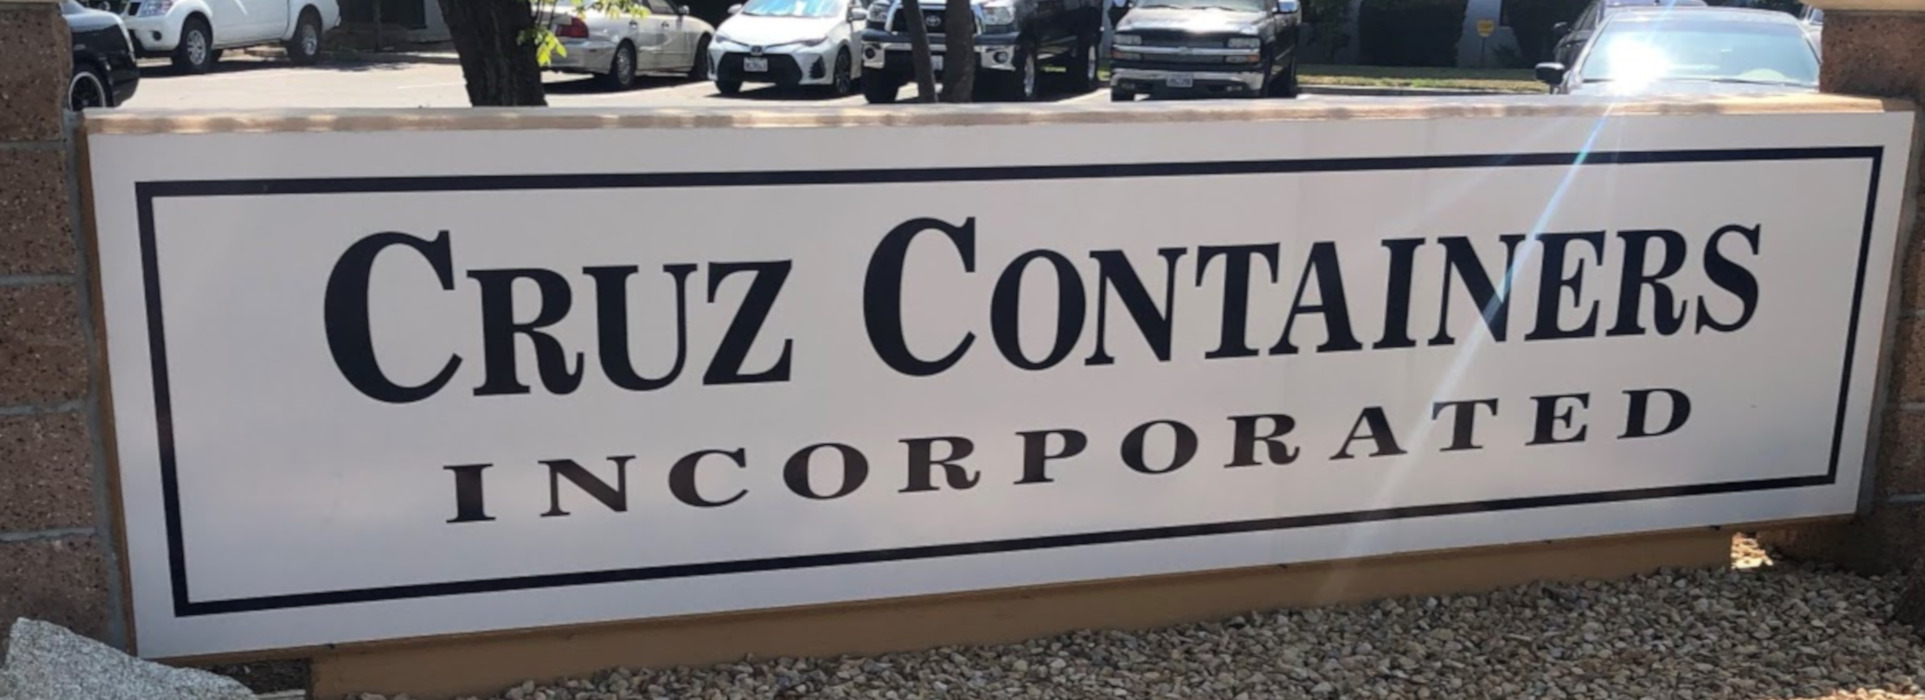 Cruz Containers, Inc